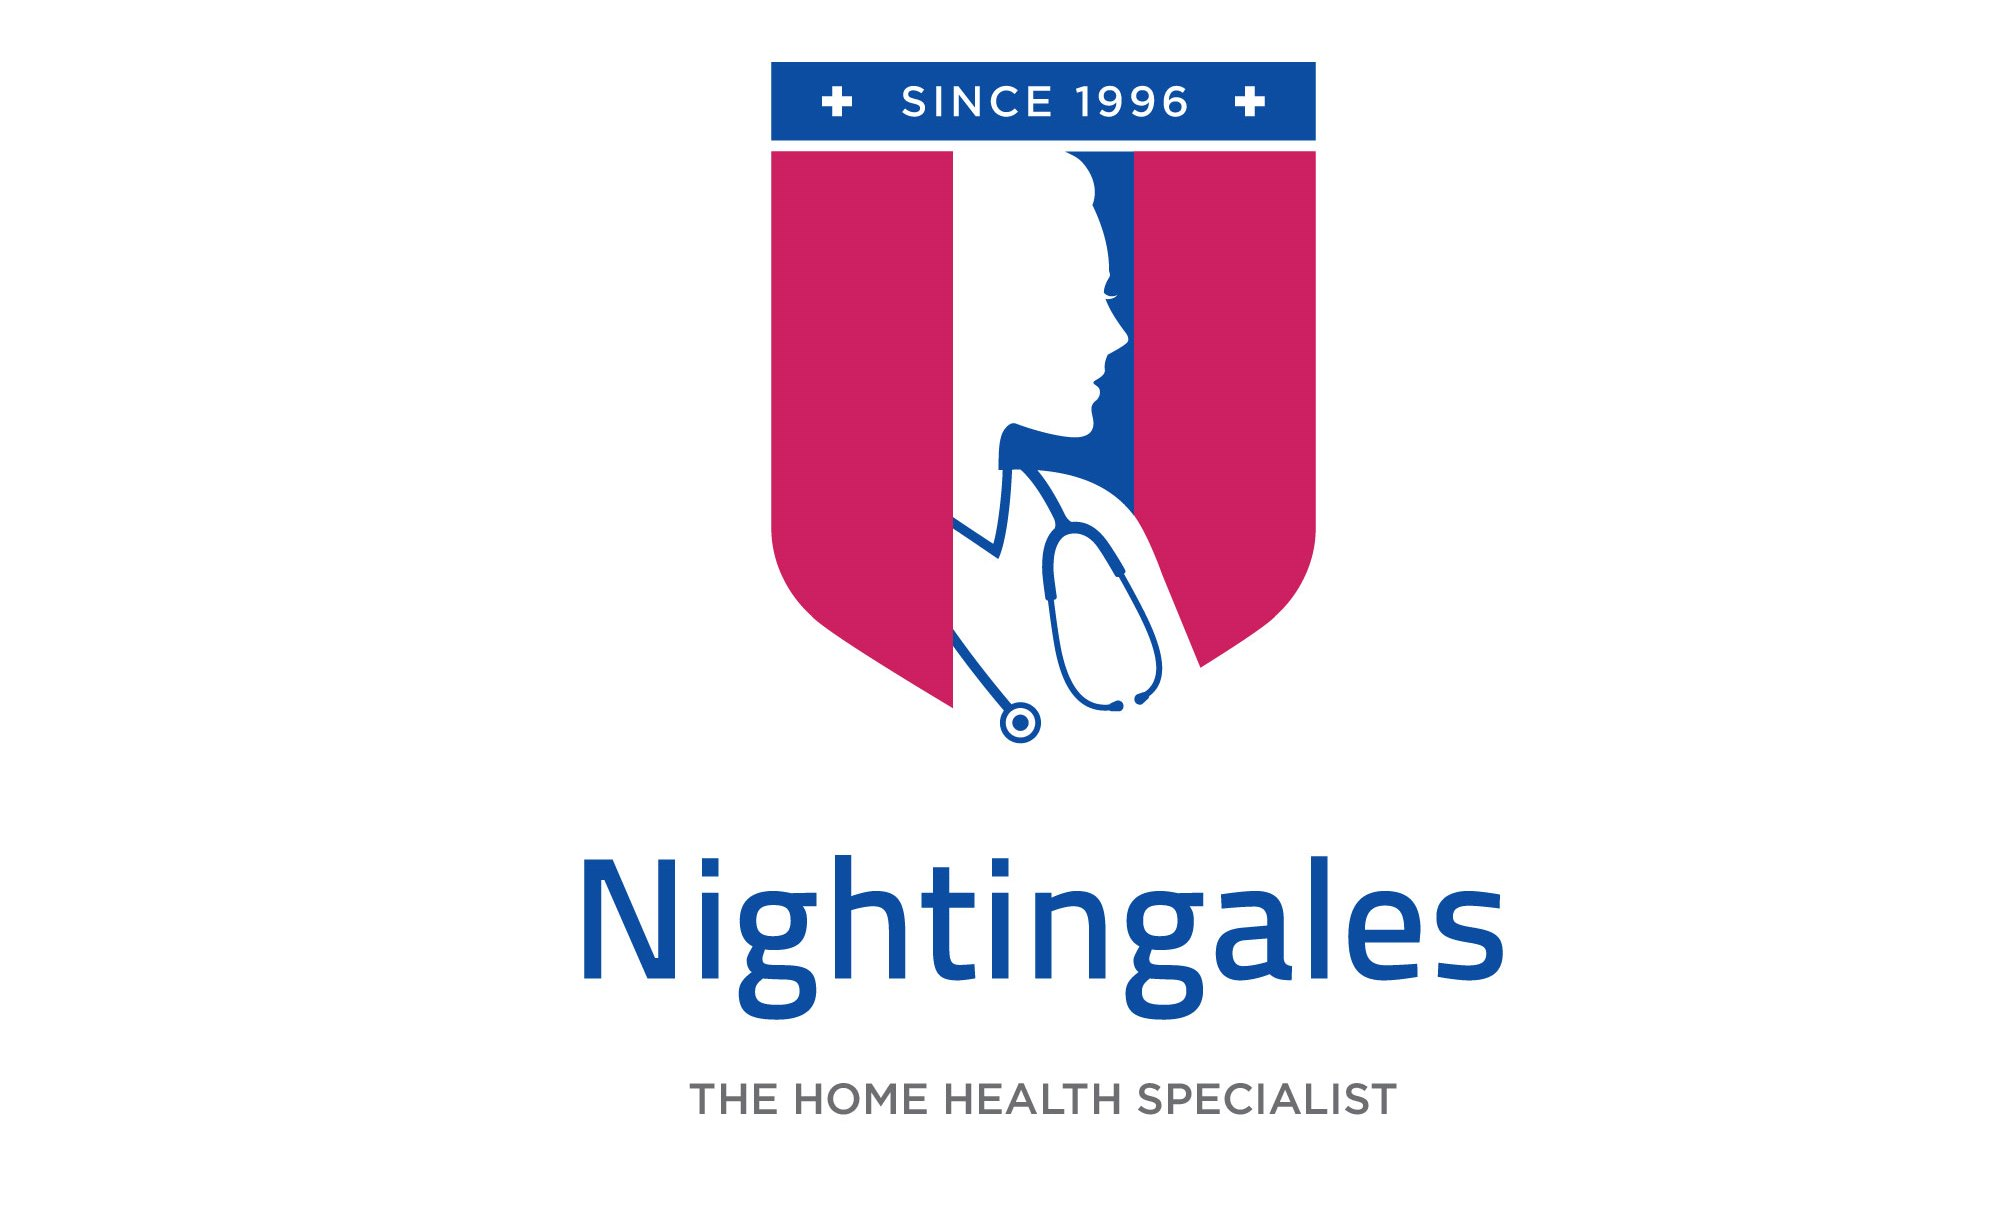 Nightingales Home Health Specialist Job Openings